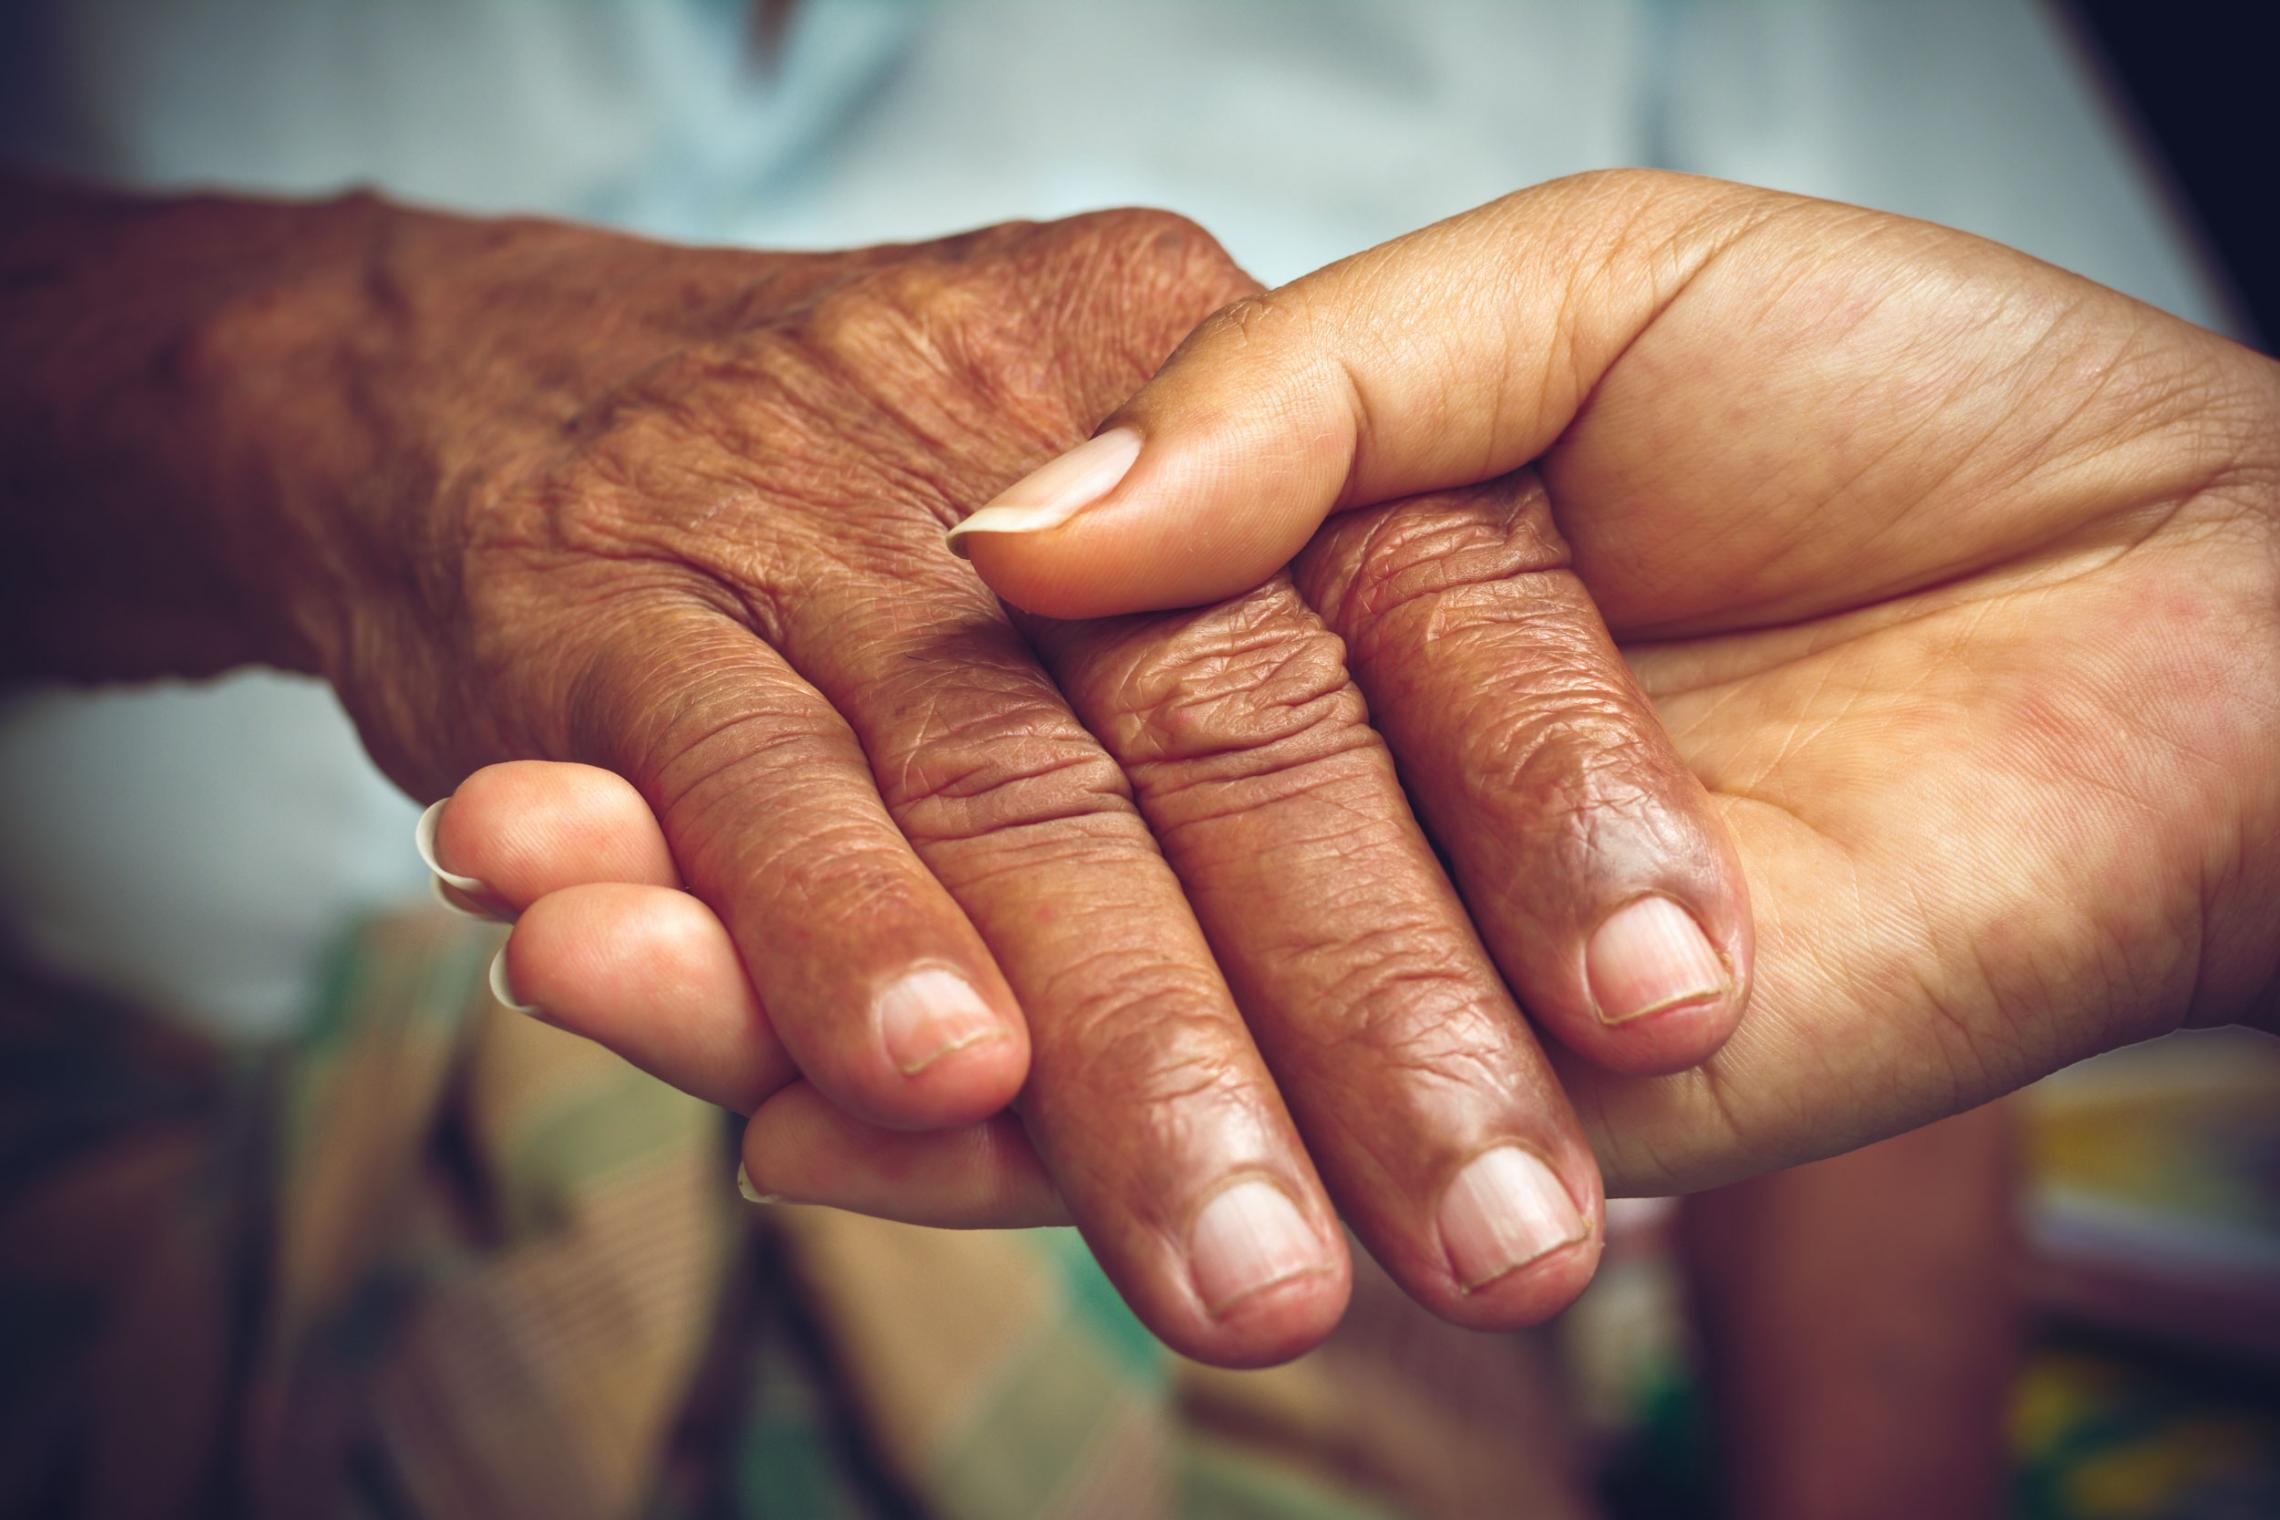 UVA Offers Novel Caregiver Support in Battle Against Deadly Lewy Body Dementia